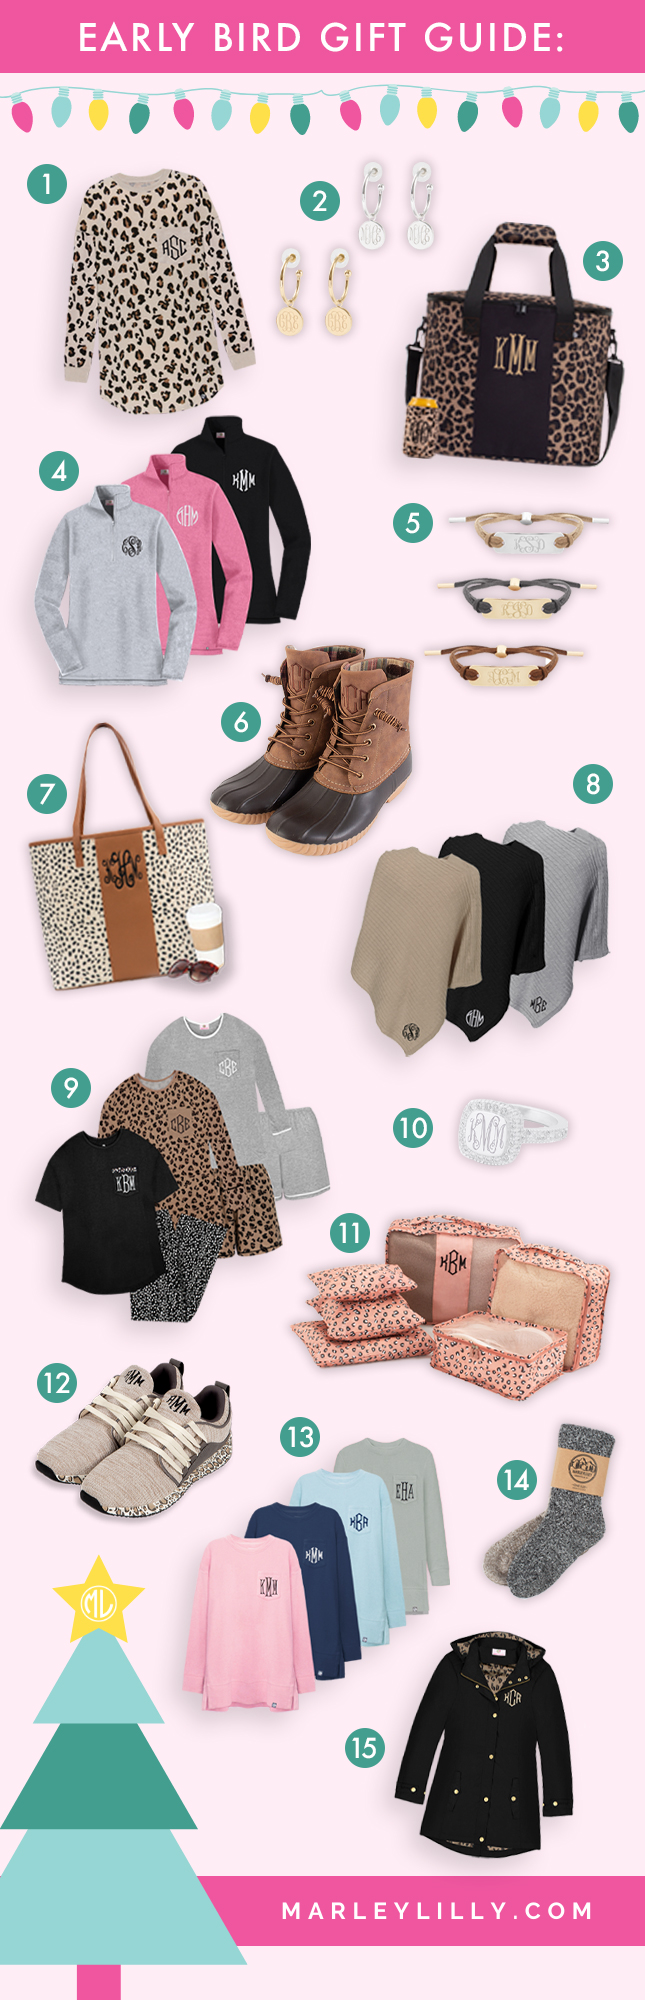 Early Bird Gift Guide from Marleylilly.com